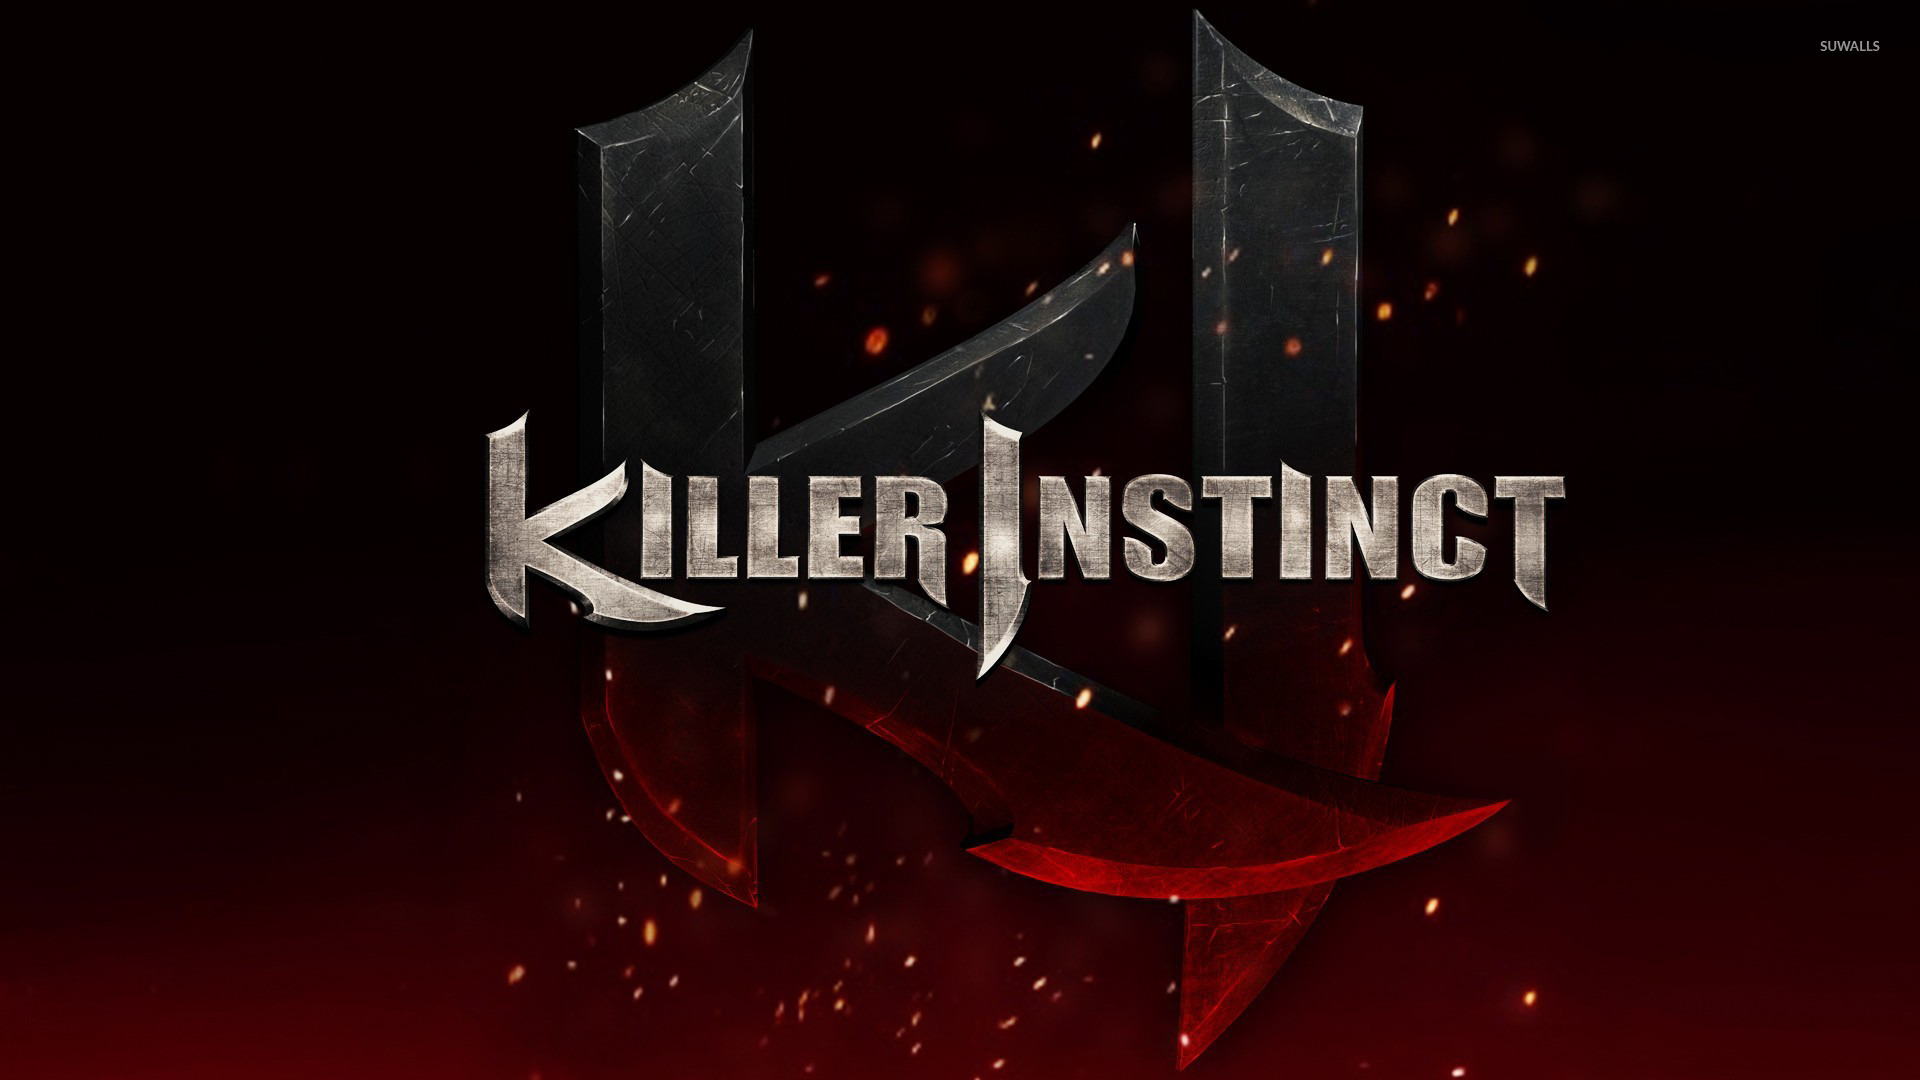 Videogame Wallpapers With Quotes Killer Instinct Wallpaper Game Wallpapers 21273